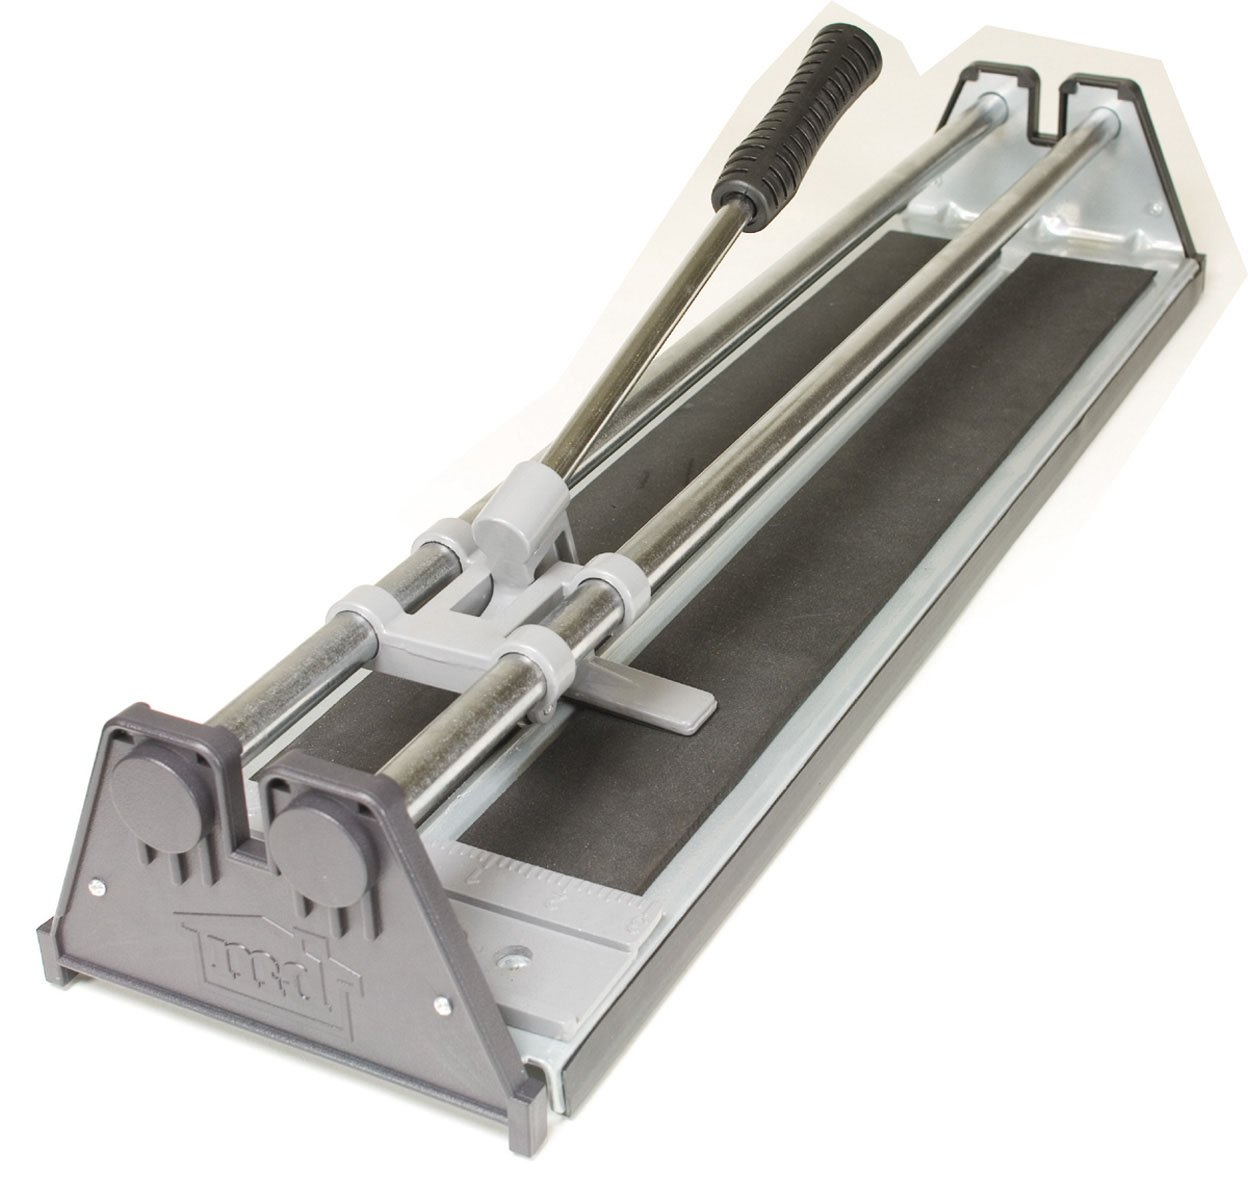 M-D Building Products 49195 20-Inch Tile Cutter by M-D Building Products